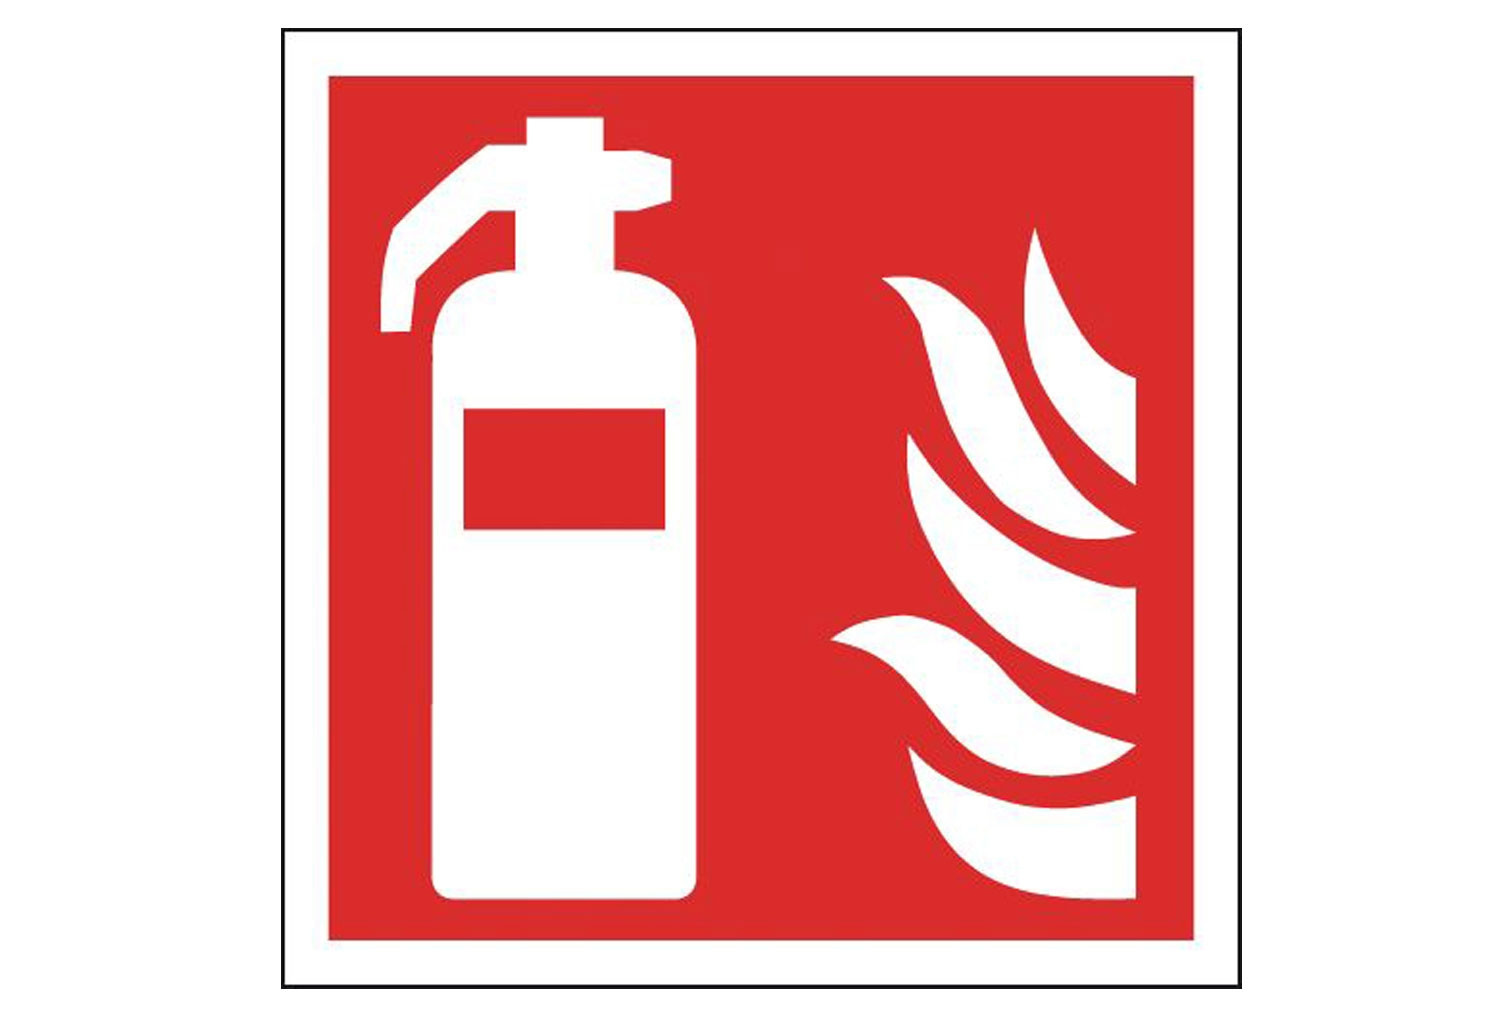 Fire Extinguisher Safety Sign (Symbols Only)